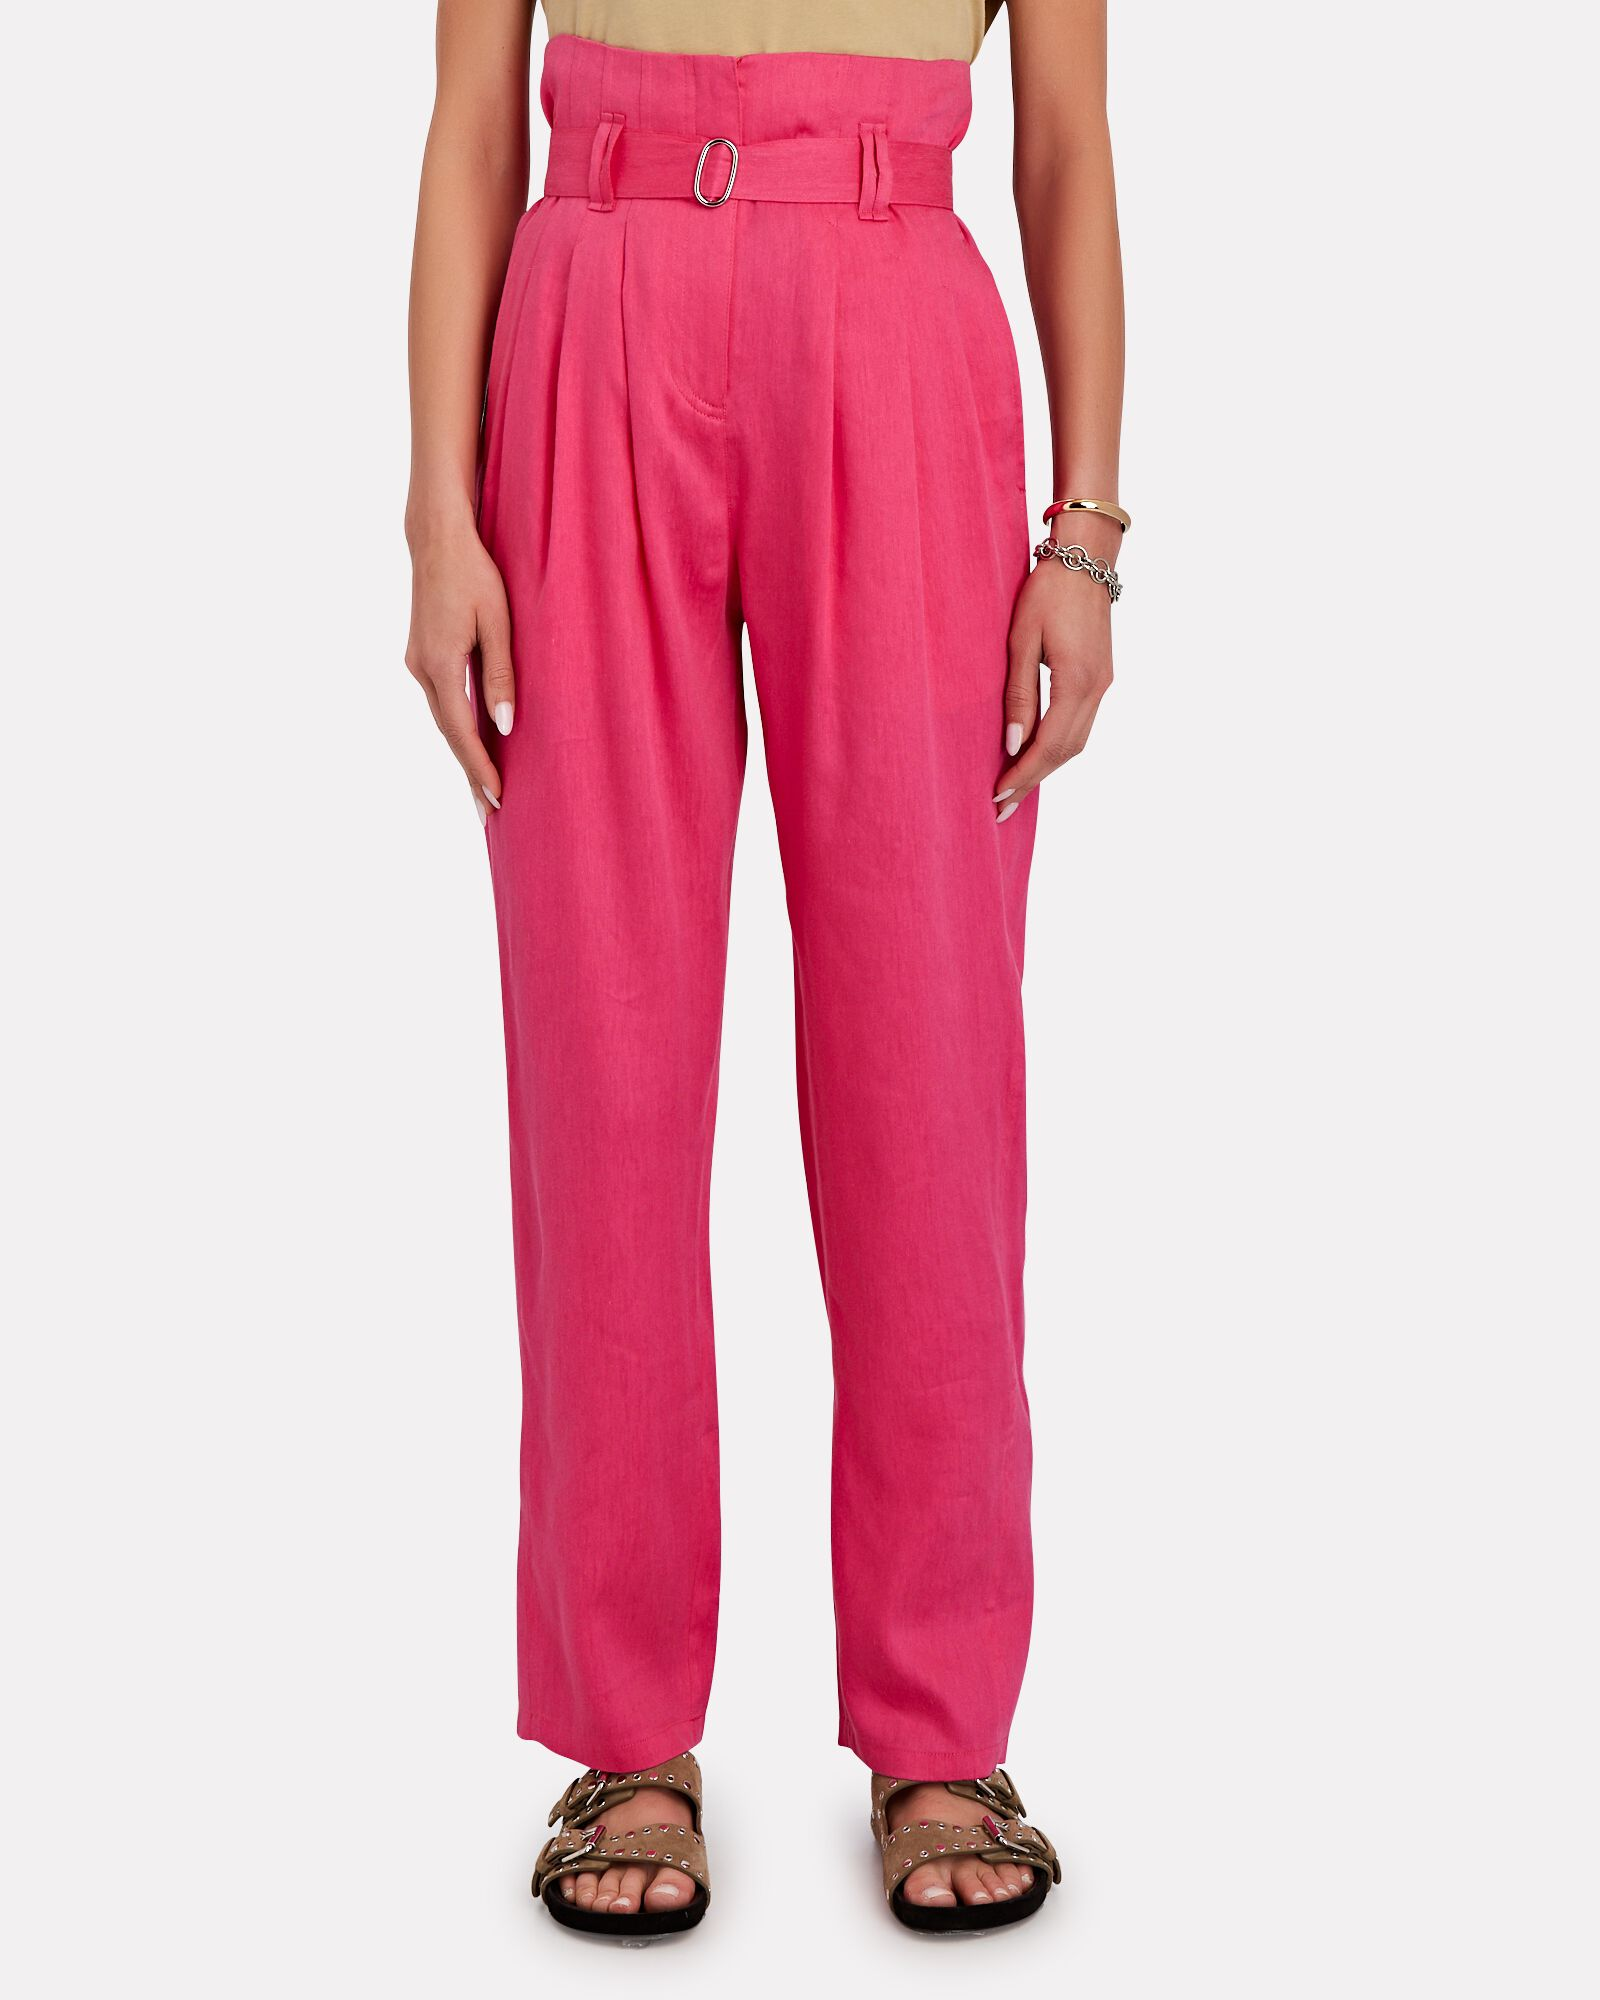 Margate Pleated Paperbag Trousers, PINK, hi-res